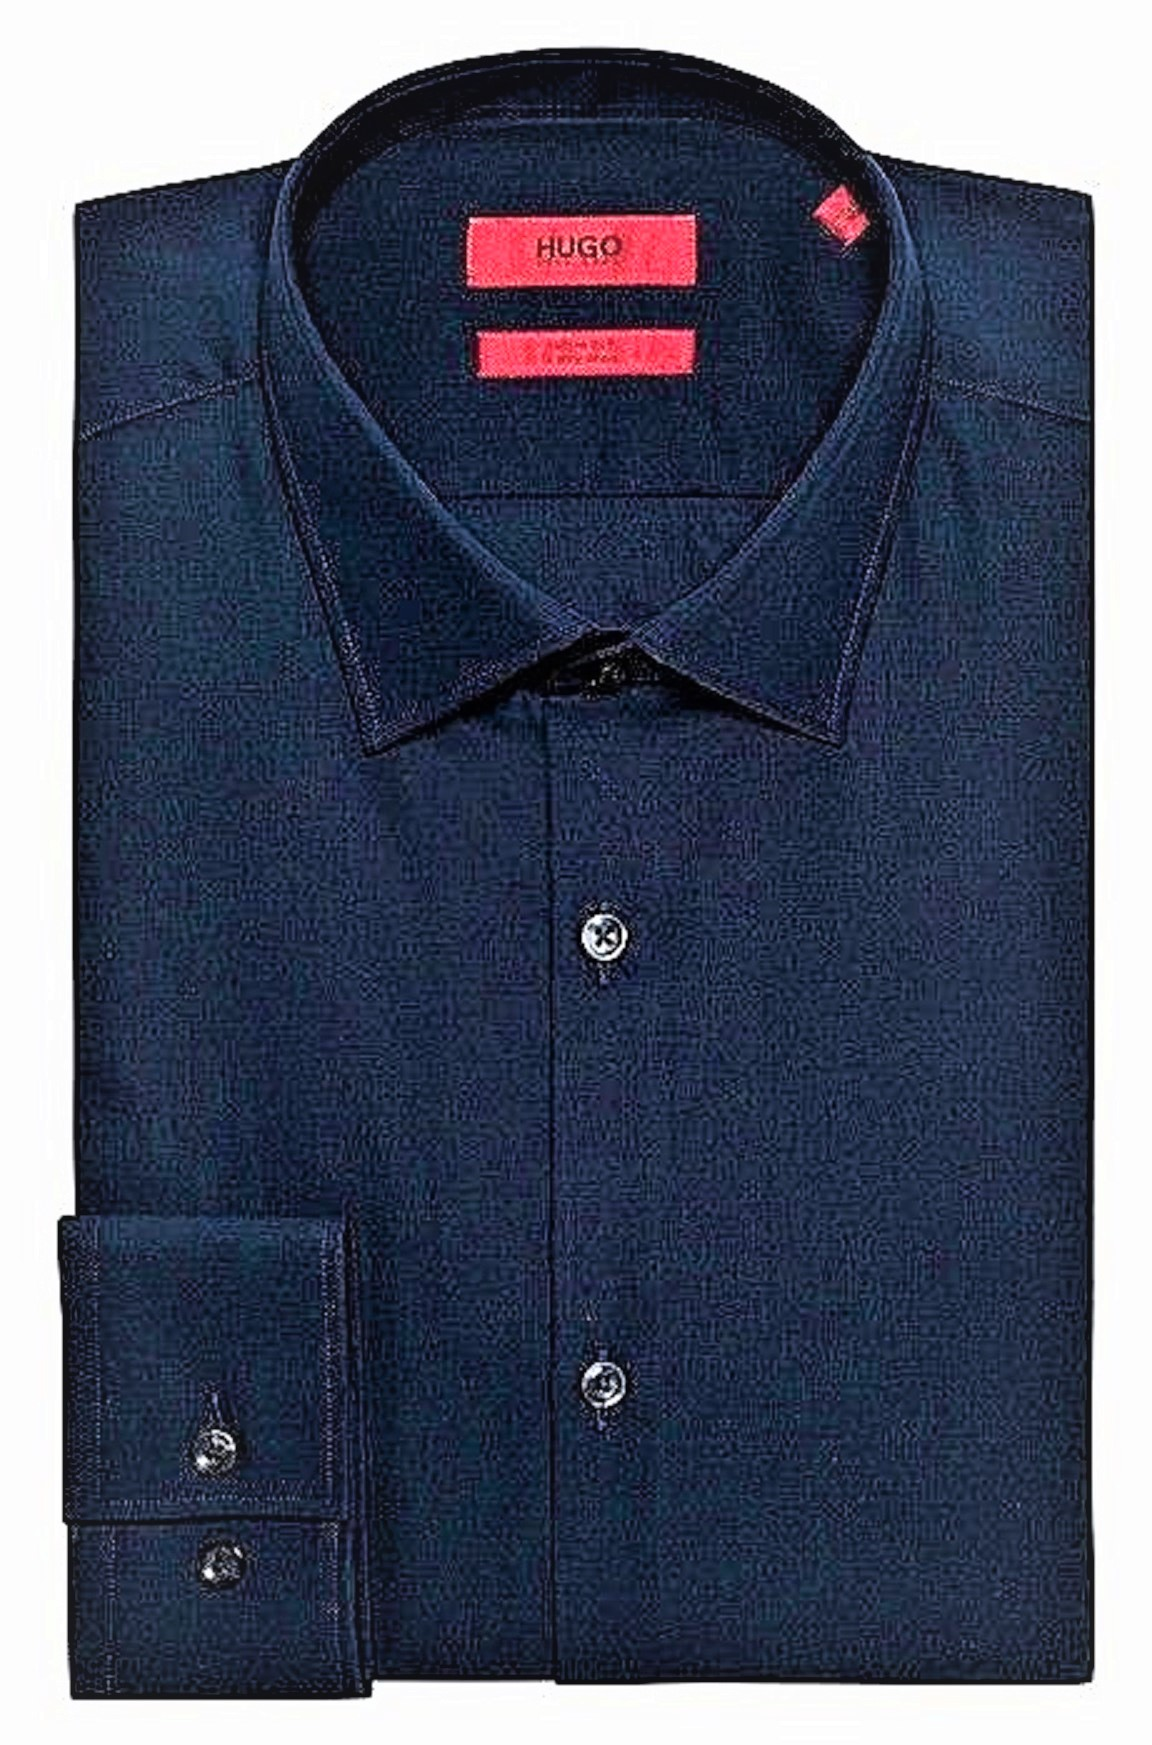 HUGO BOSS Camicia business slim fit in popeline di cotone C-Jenno - 50289499 BLU